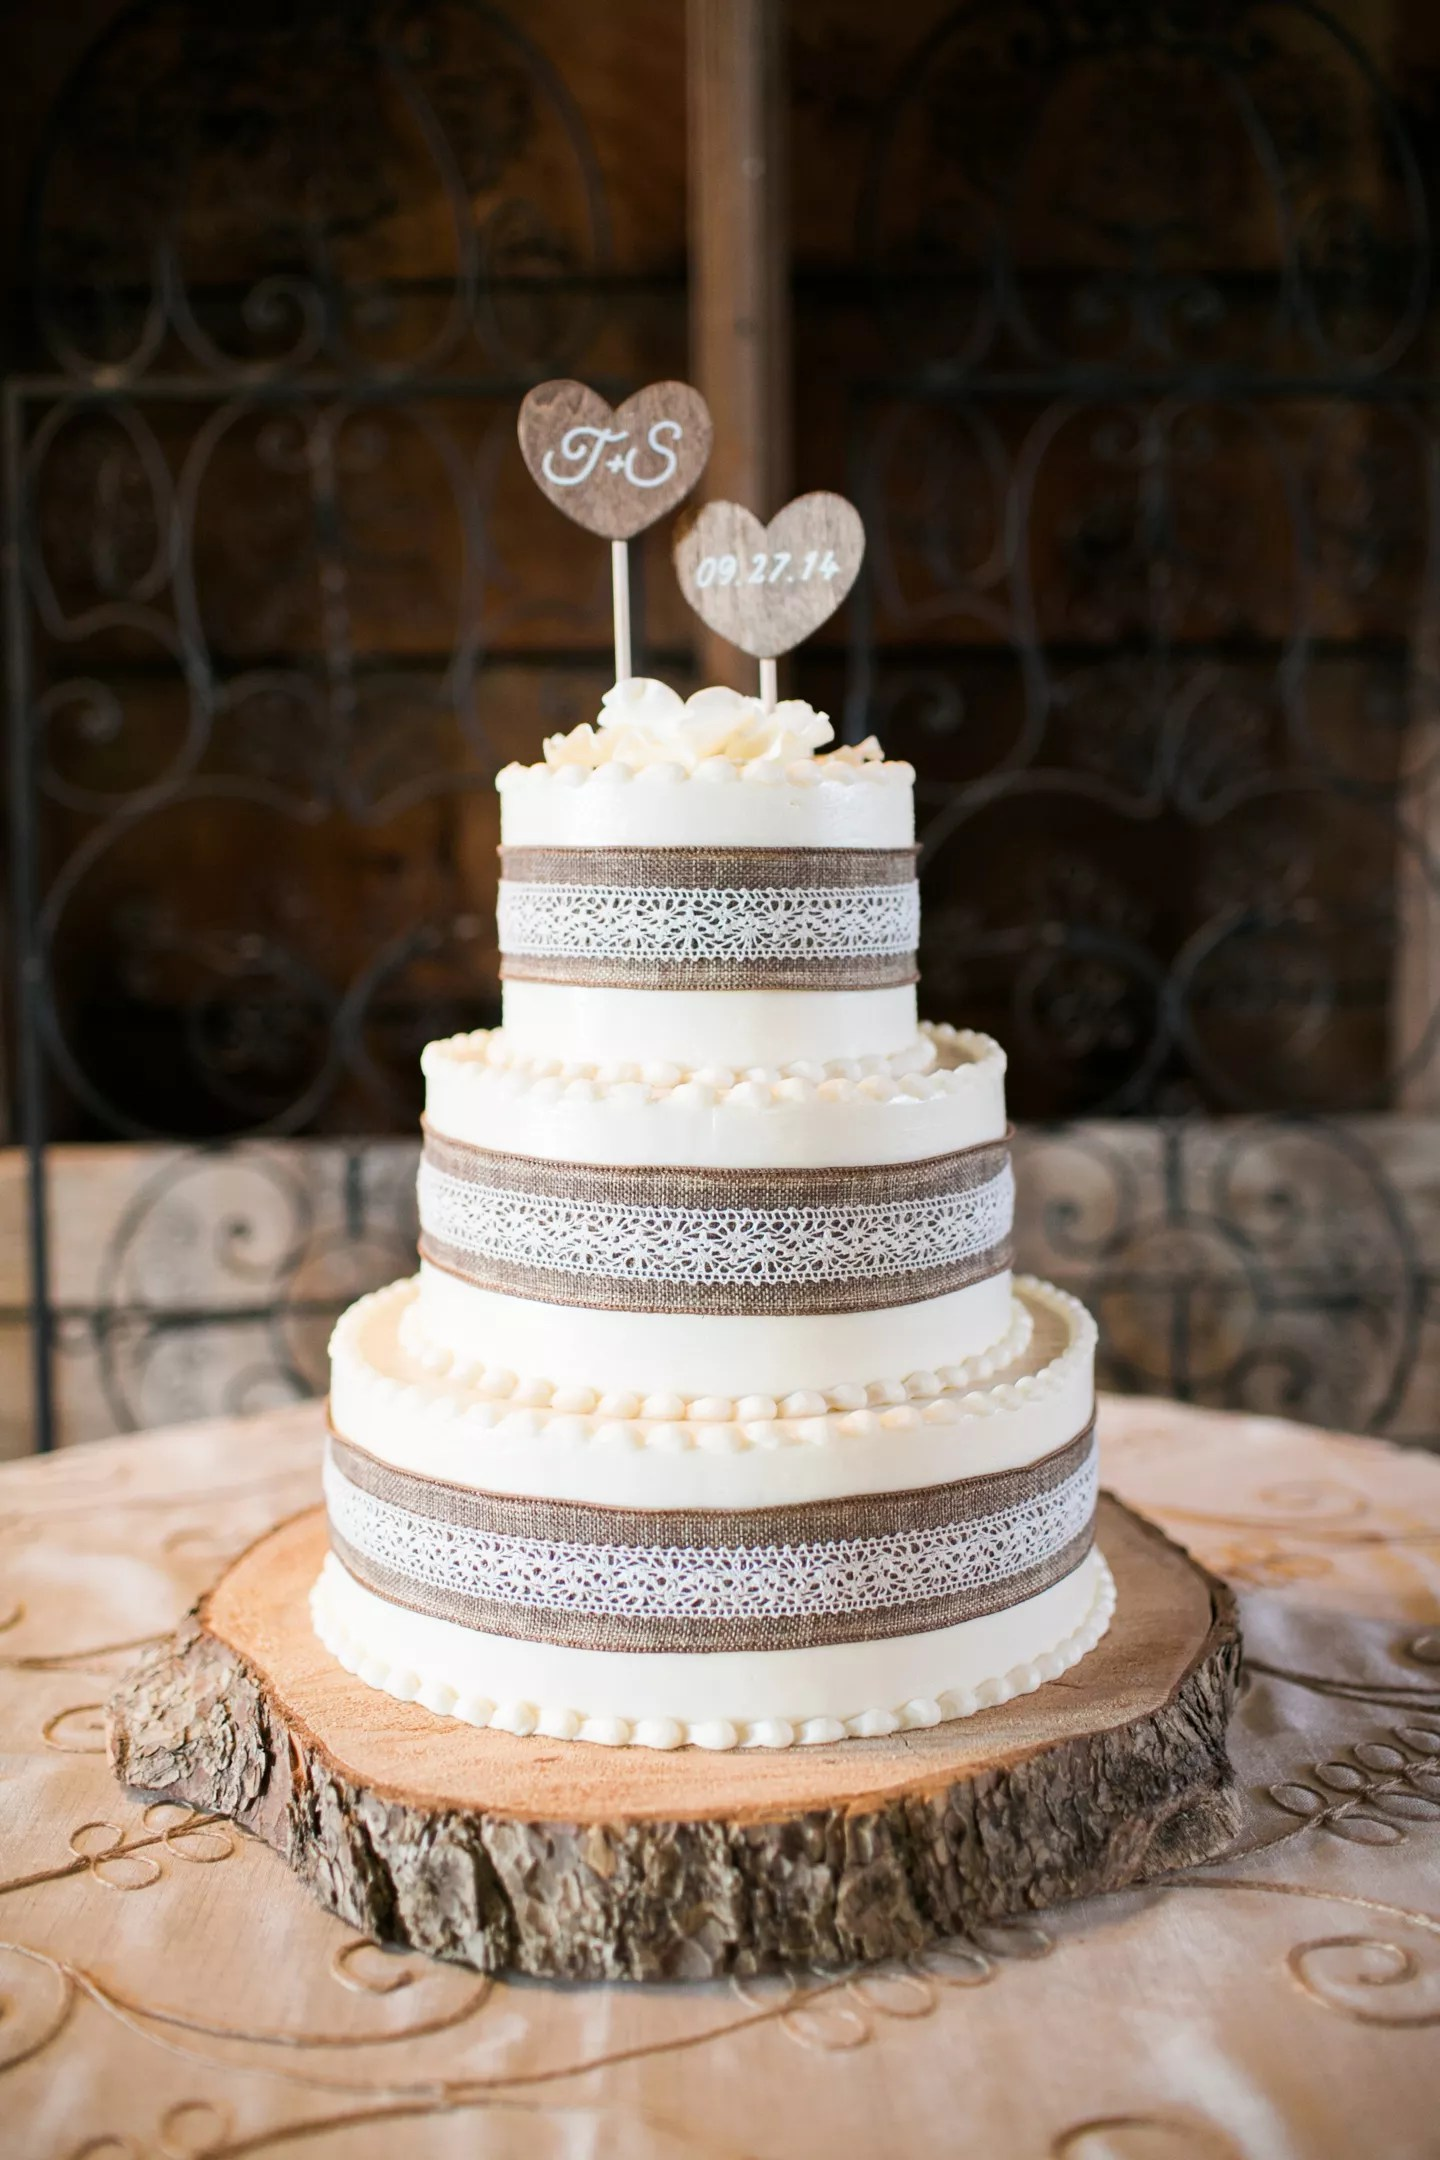 Wedding Cake With Burlap And Lace And Custom Wood Heart Topper